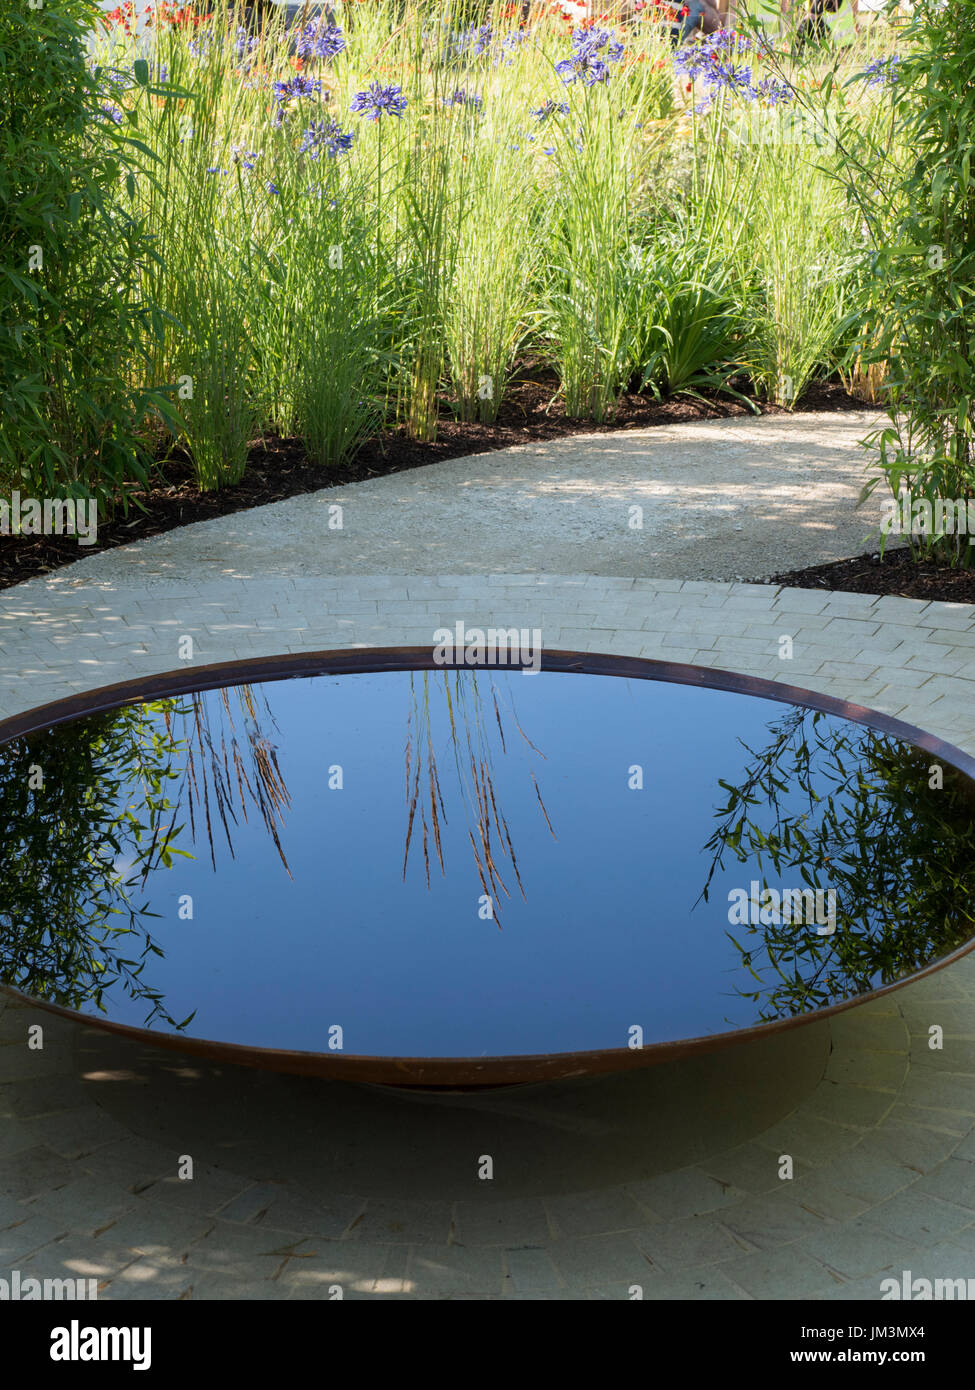 Hampton Court Show Garden - Perennial Sanctuary Garden designed by Tom Massey.  Silver Gilt medal.  Circular water pool / feature in the central paved - Stock Image